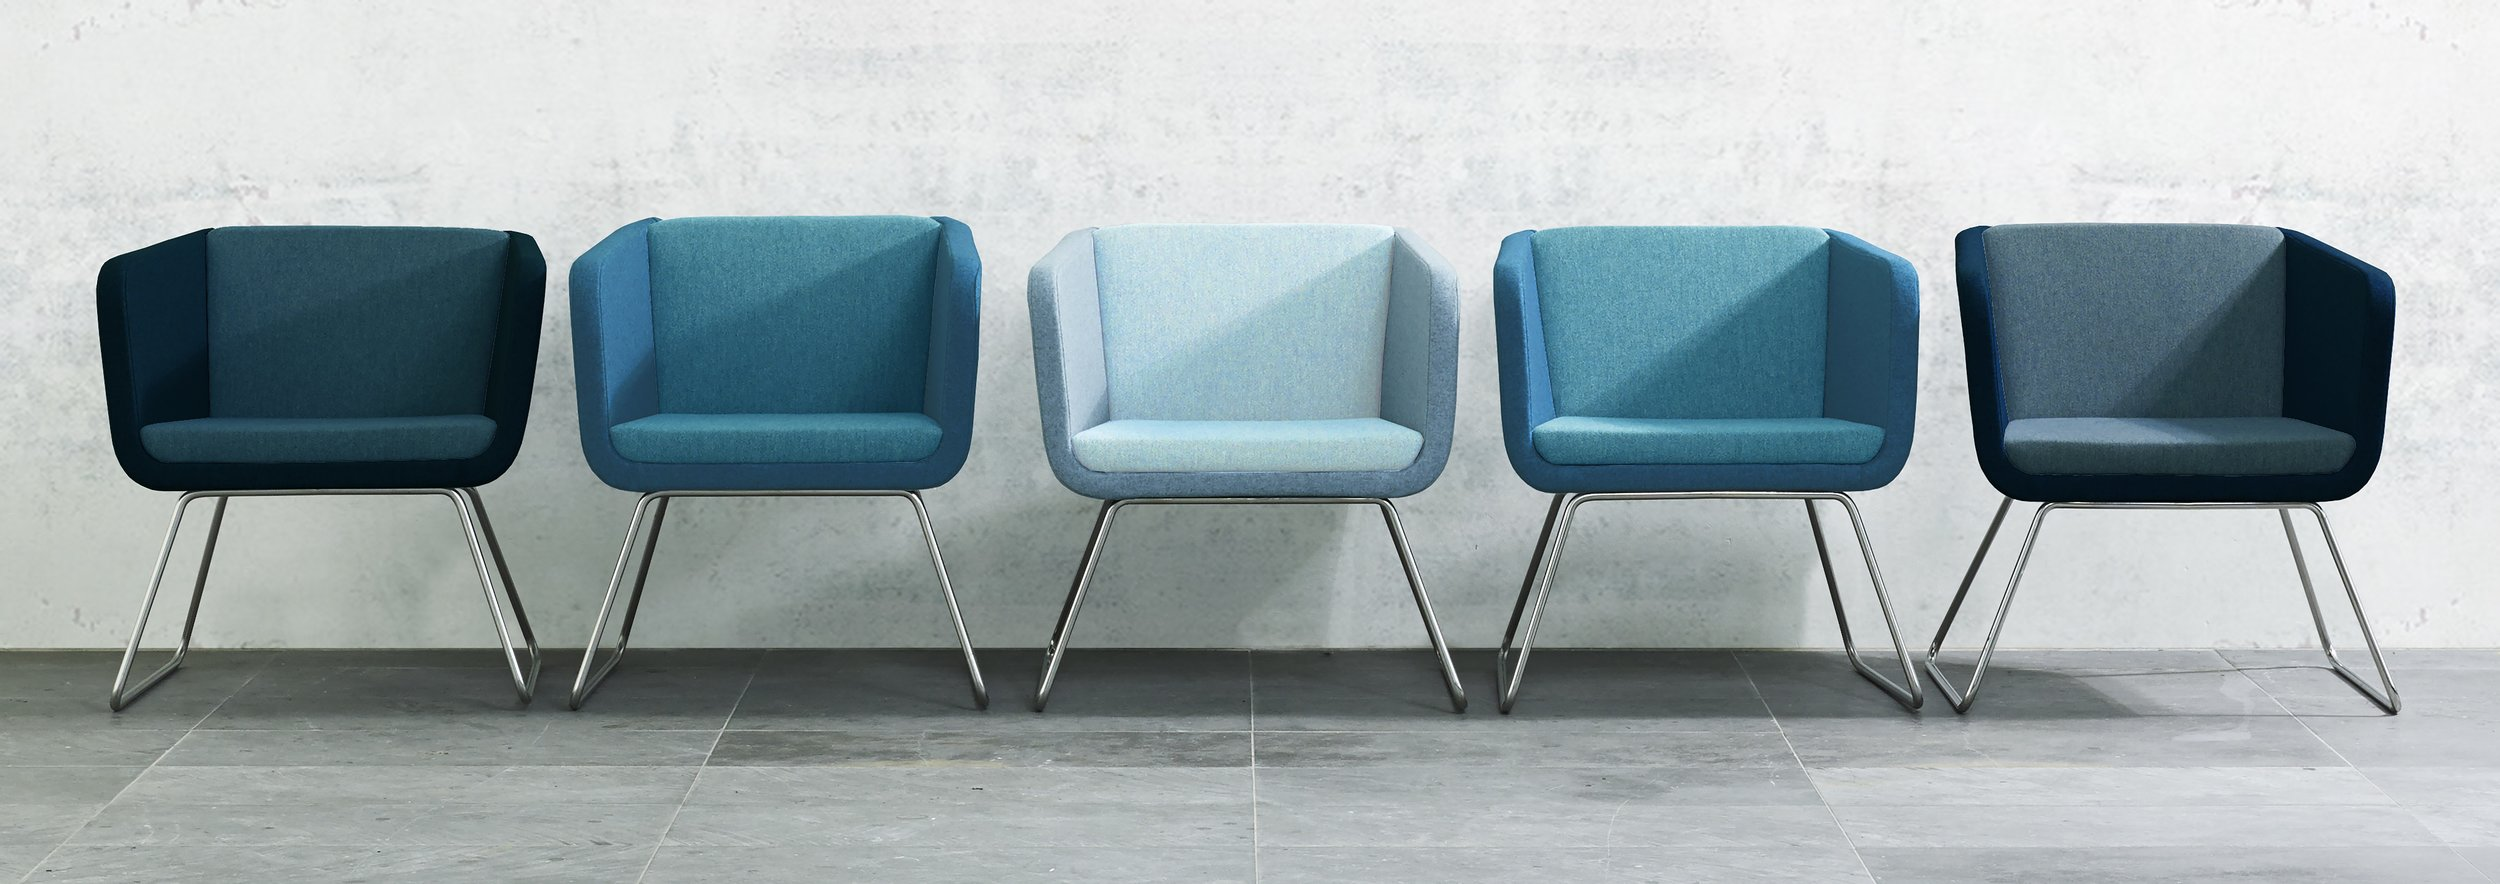 5 chairs low res.jpg